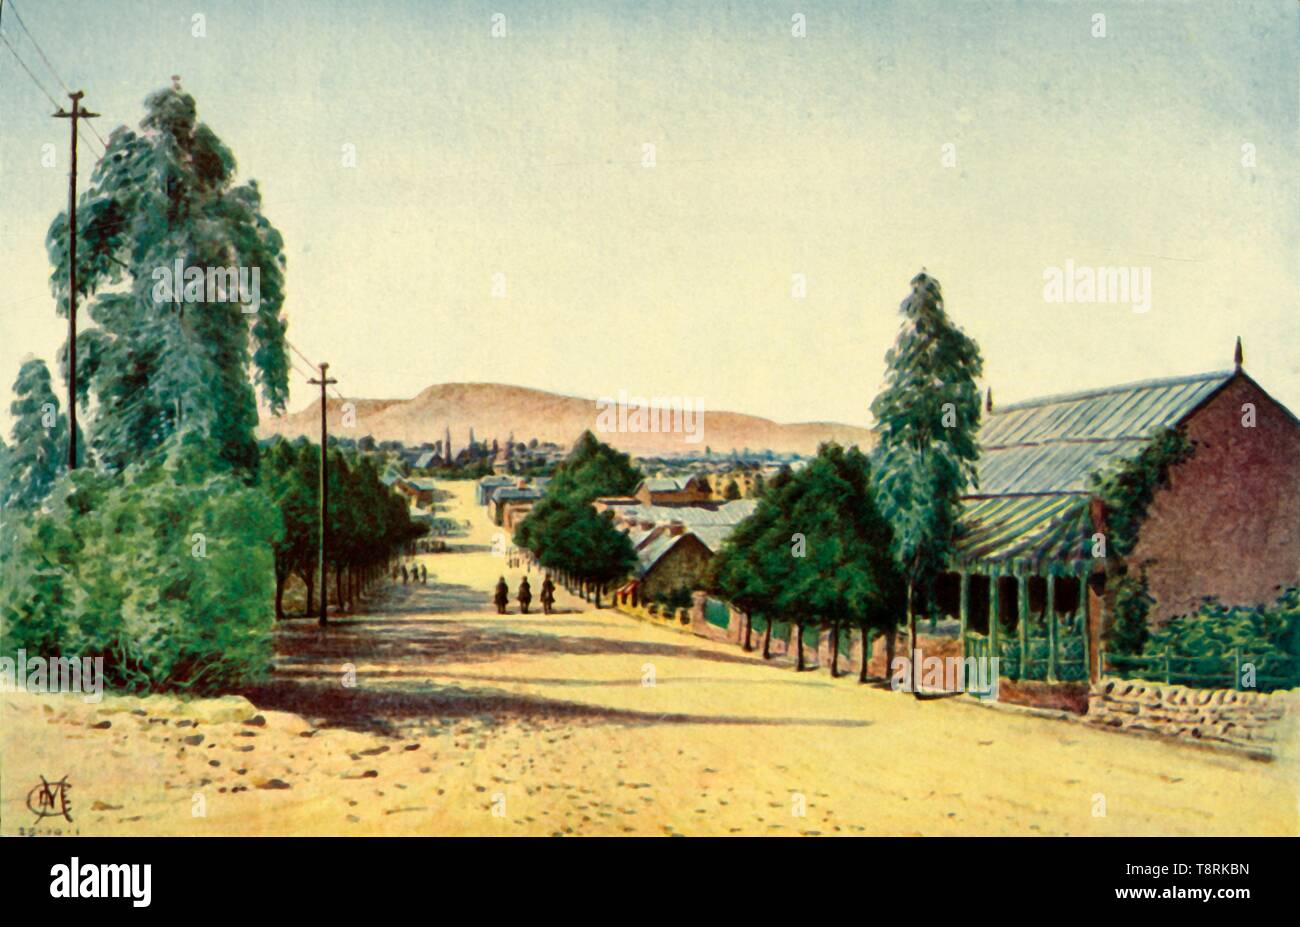 """'Bloemfontein', 1901. The town of Bloemfontein, capital of the Orange Free State, an independent Boer sovereign republic until 1902, and now part of South Africa. From """"The Life and Deeds of Earl Roberts, Vol. IV. - To Lord Roberts's Reign in Pall Mall"""", by J. Maclaren Cobban. [T. C. & E. C. Jack, Edinburgh, 1901] - Stock Image"""